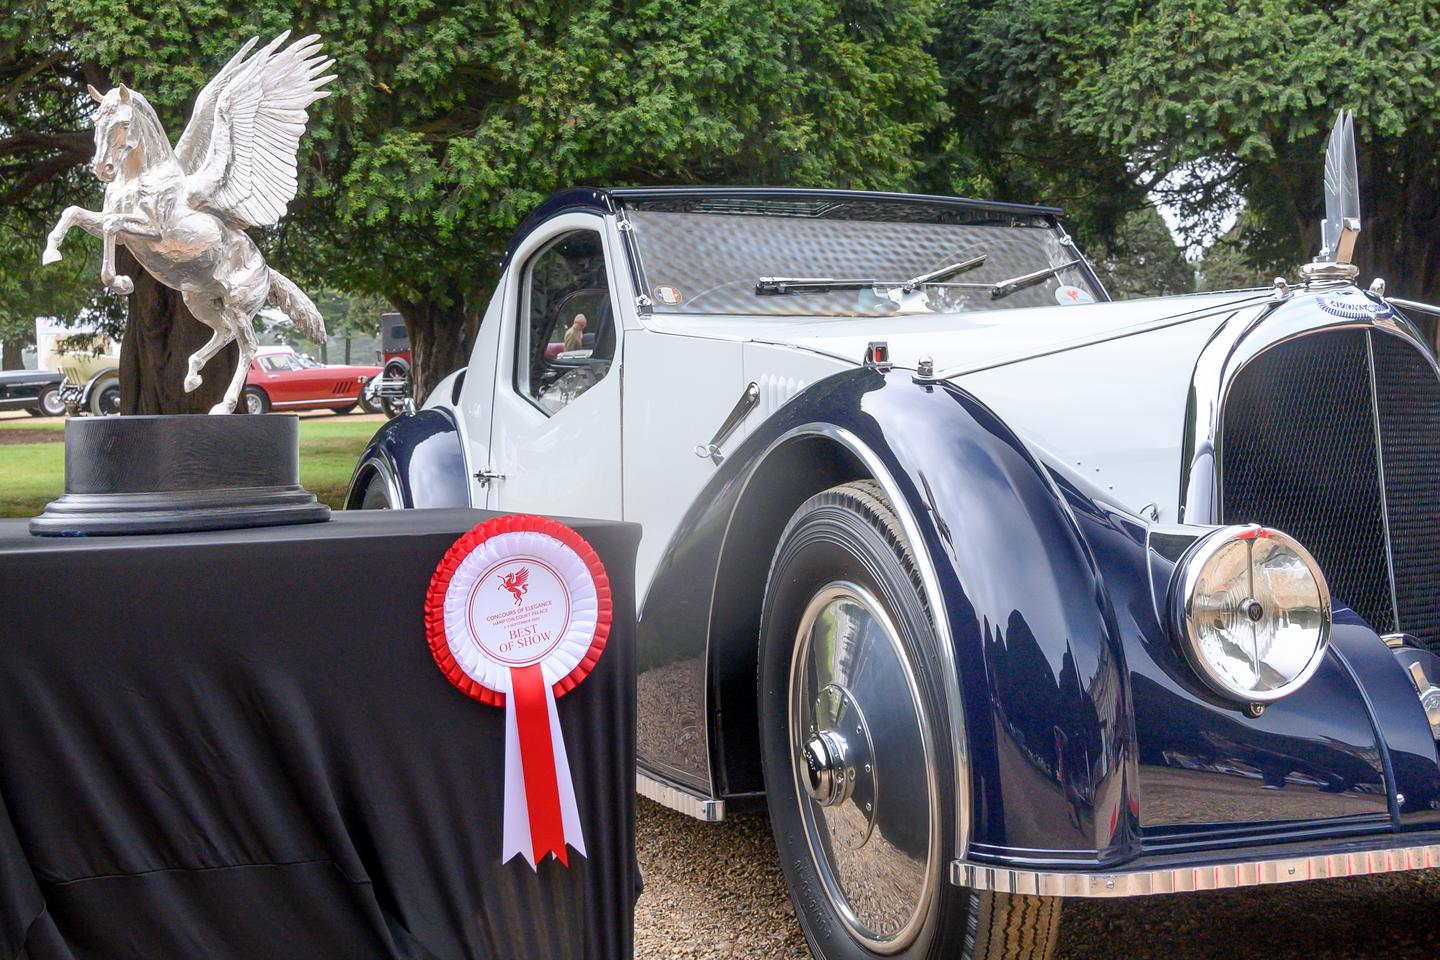 The winner of the Best of Show at the 2021 Concours of Elegance UK, the unique art deco Voisin C-27 Aérosport